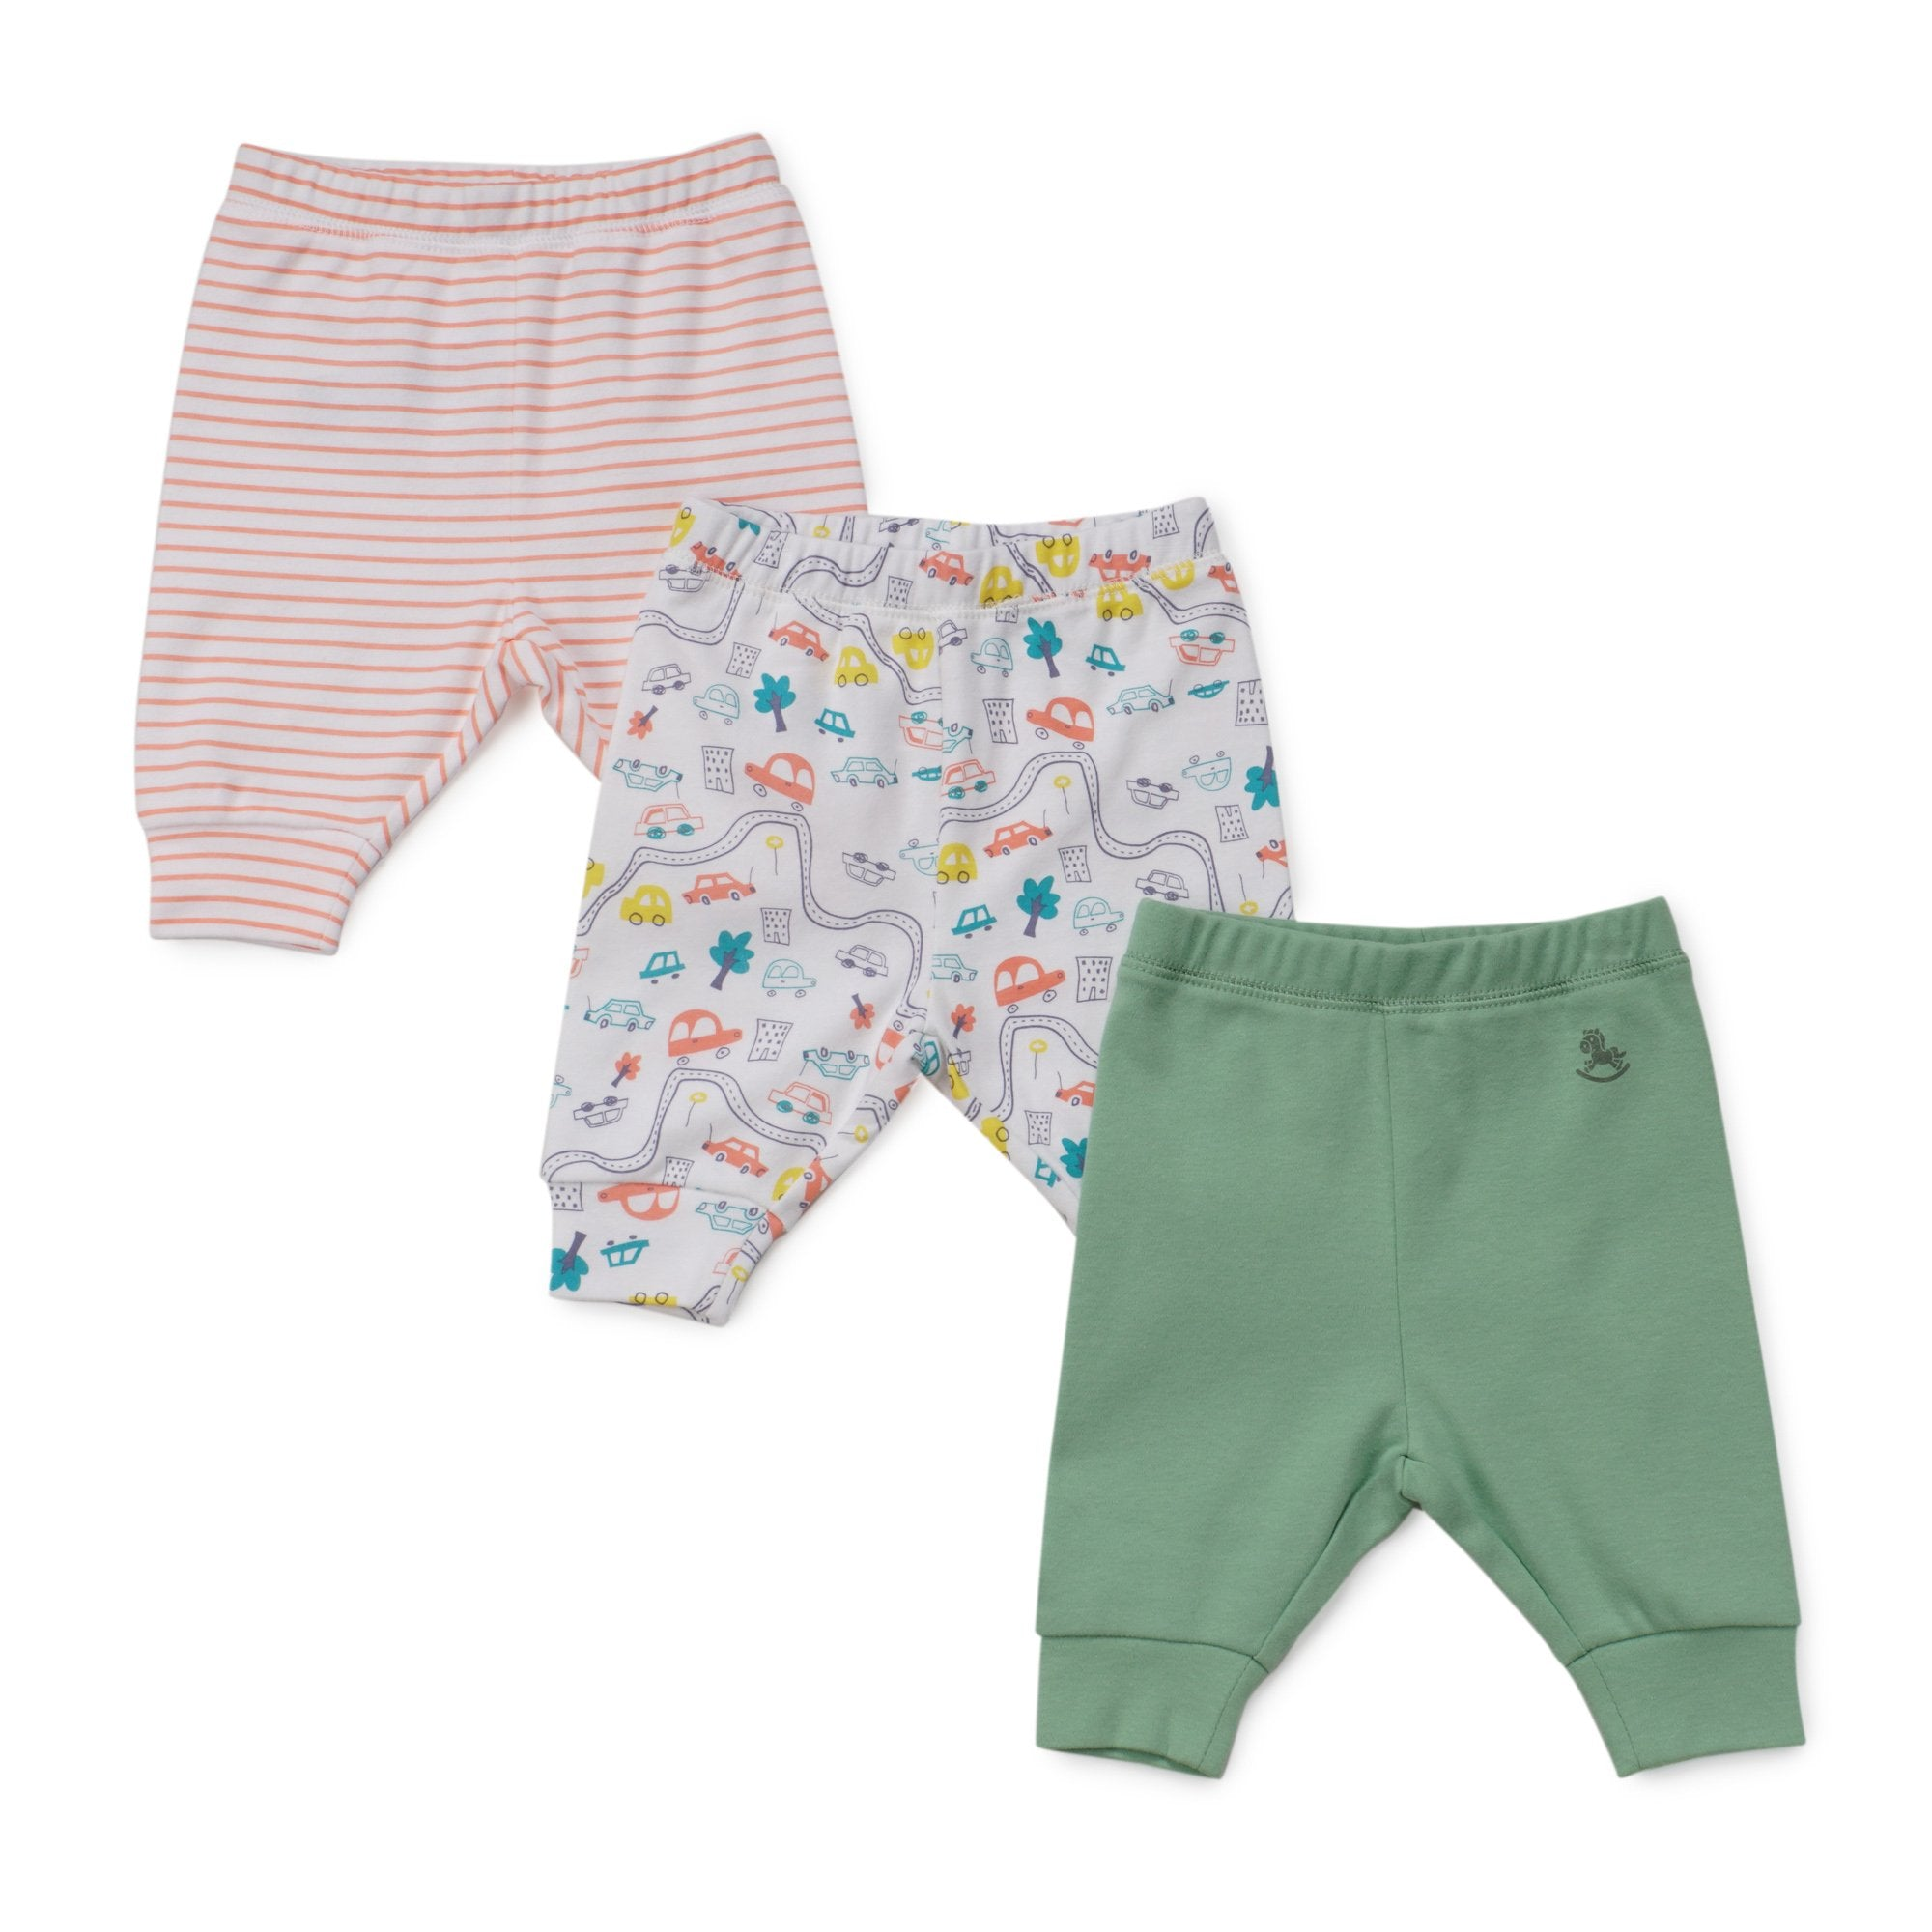 Poney Essential Boys 3-Pack Long Pants 80008